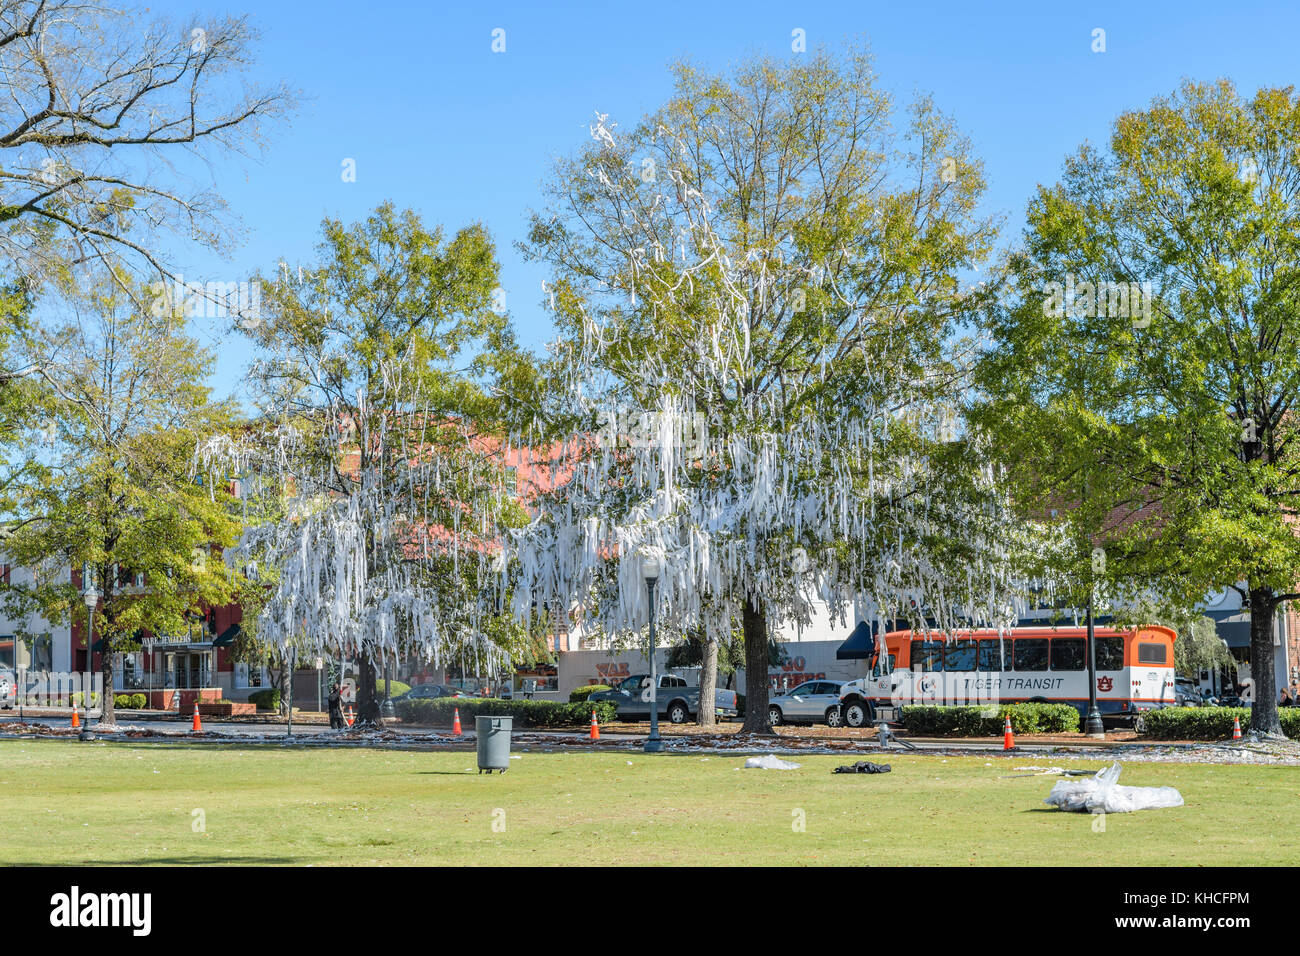 Clean up at Toomer's Corner, removing white toilet paper from the trees, after a win by Auburn University football - Stock Image